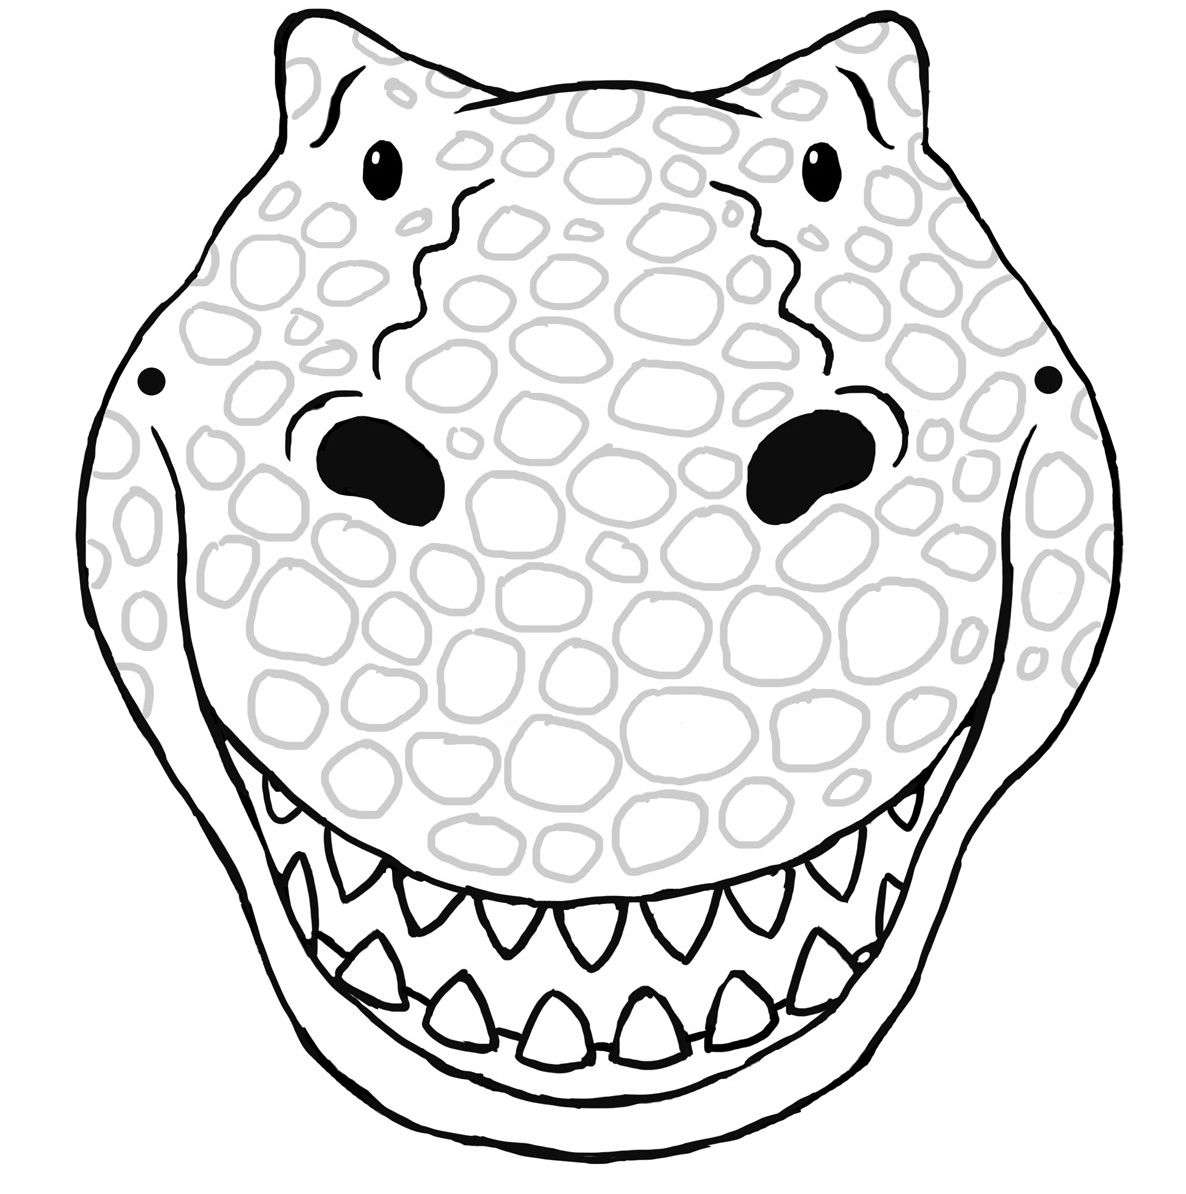 Nerdy image intended for dinosaur mask printable